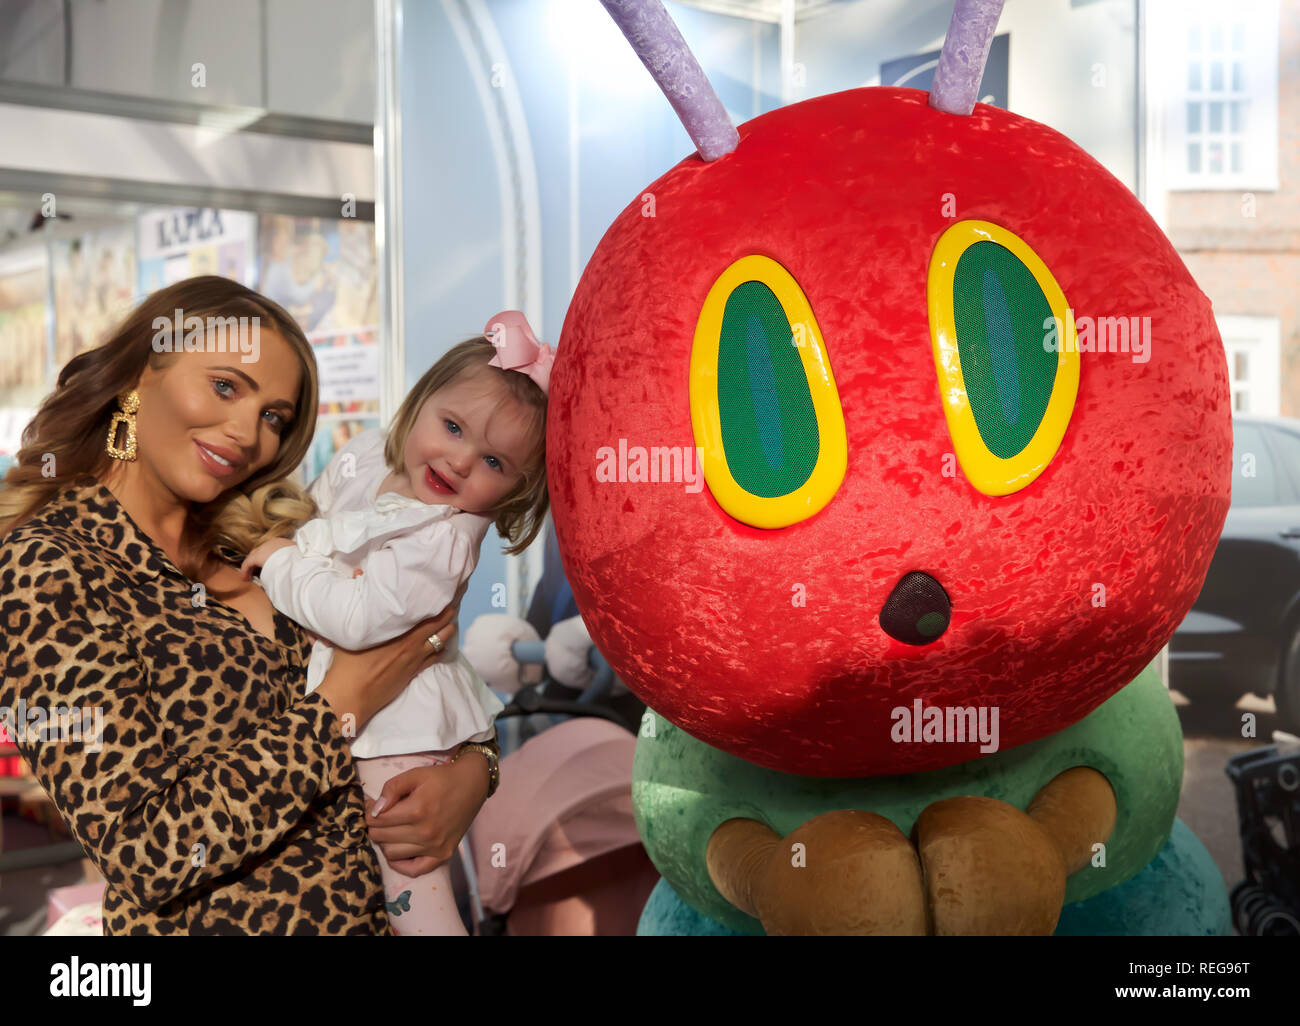 London, UK. 22nd Jan, 2019. Amy Childs, English television personality, model, businesswoman and fashion designer along with her Daughter, Polly, attend The Toyfair which opened at Olympia in Kensington, London and is open daily until the 24th January 2019. The Toy Fair is the UK's largest dedicated toy, game and hobby trade show which takes place annually. The toy industry's showcase welcomes more than 270 companies exhibiting thousands of products to visitors including retailers, buyers, media and the wider industry. Credit: Keith Larby/Alamy Live News - Stock Image